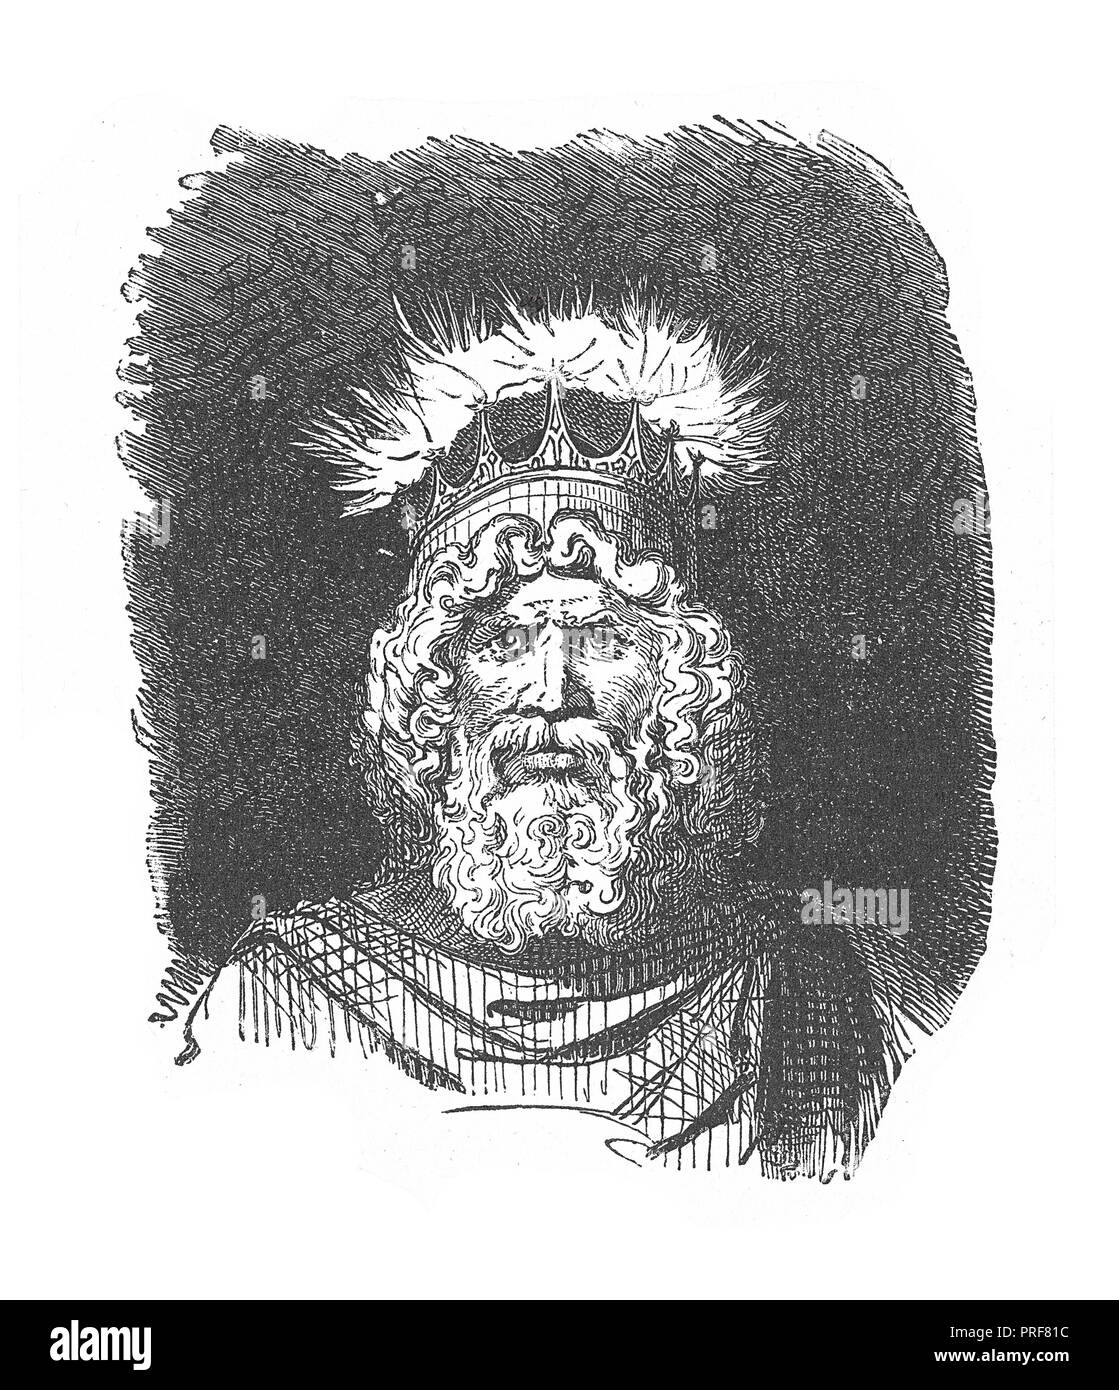 Original artwork of Thor, a god associated with thunder, lightning, storms, oak trees, strength, the protection of mankind, and also hallowing, healin - Stock Image